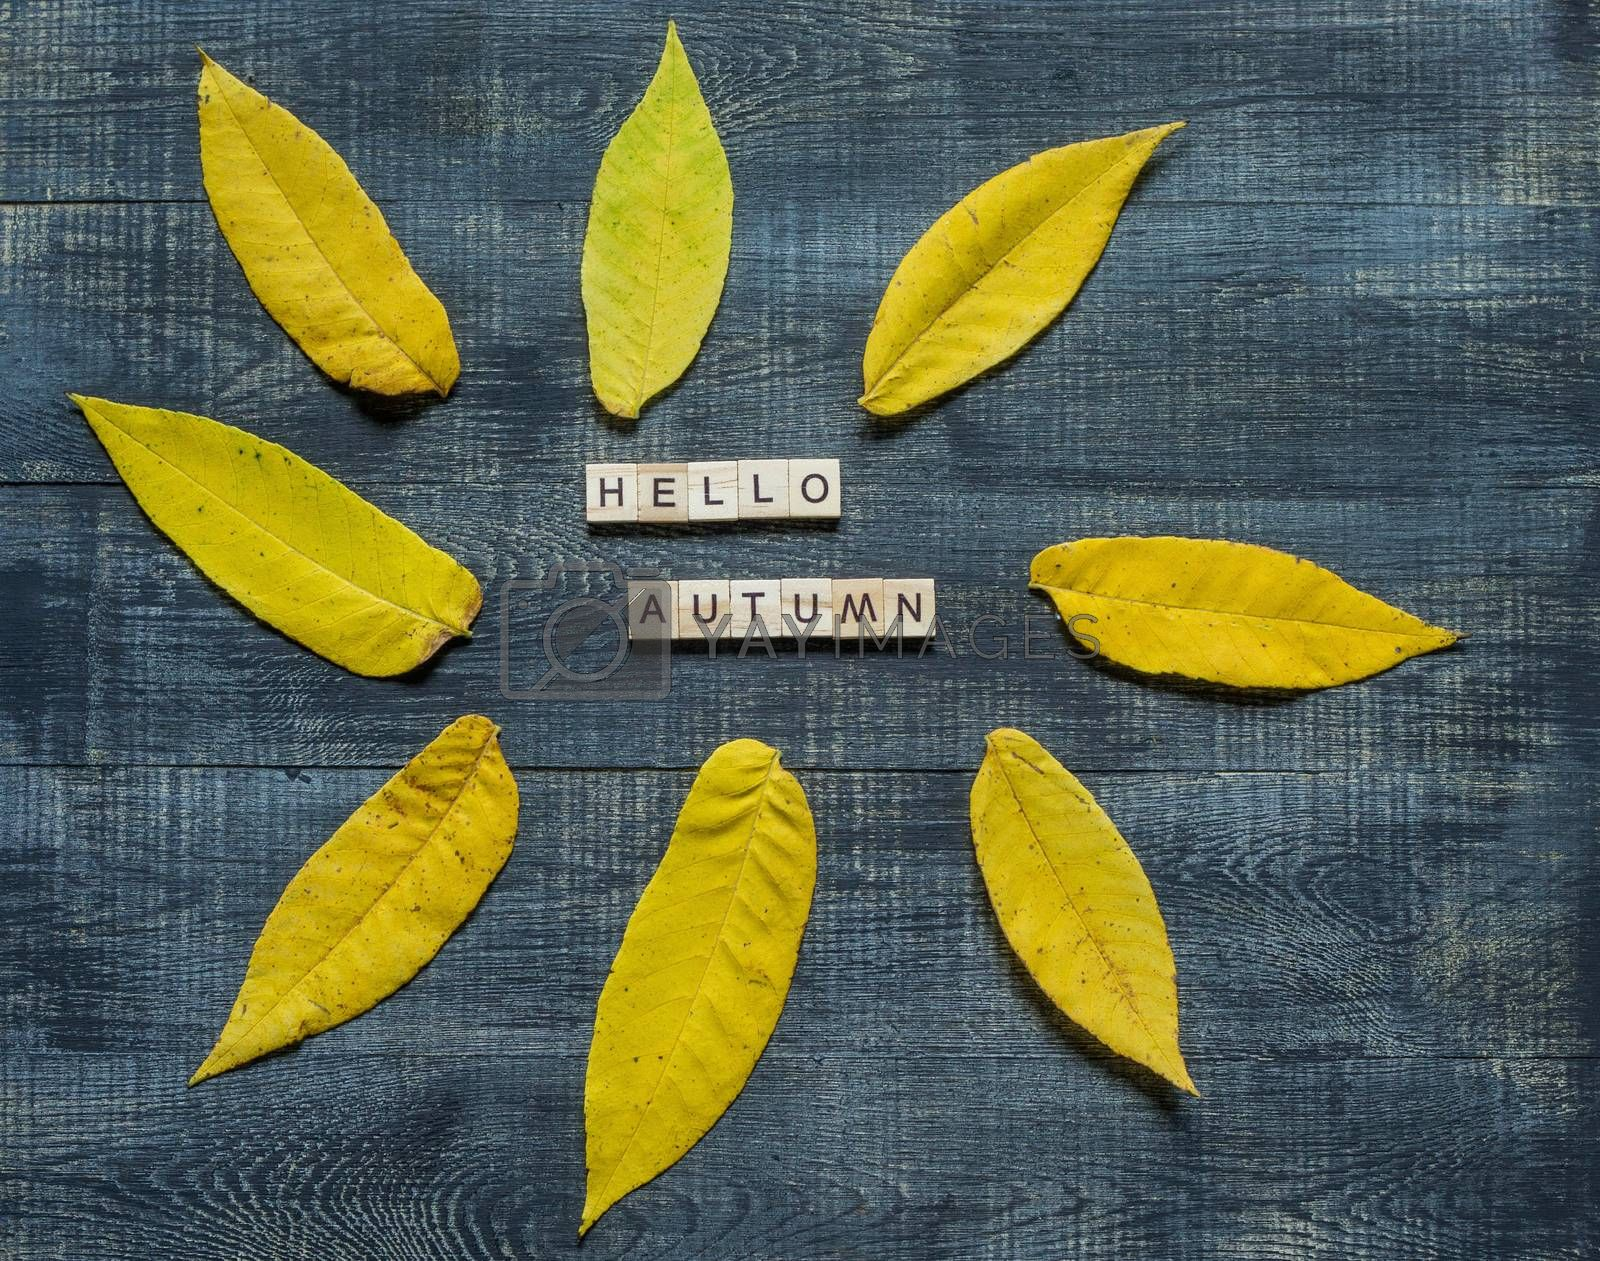 Autumn flat lay with multicolored fallen leaves and hello autumn lettering on wooden background